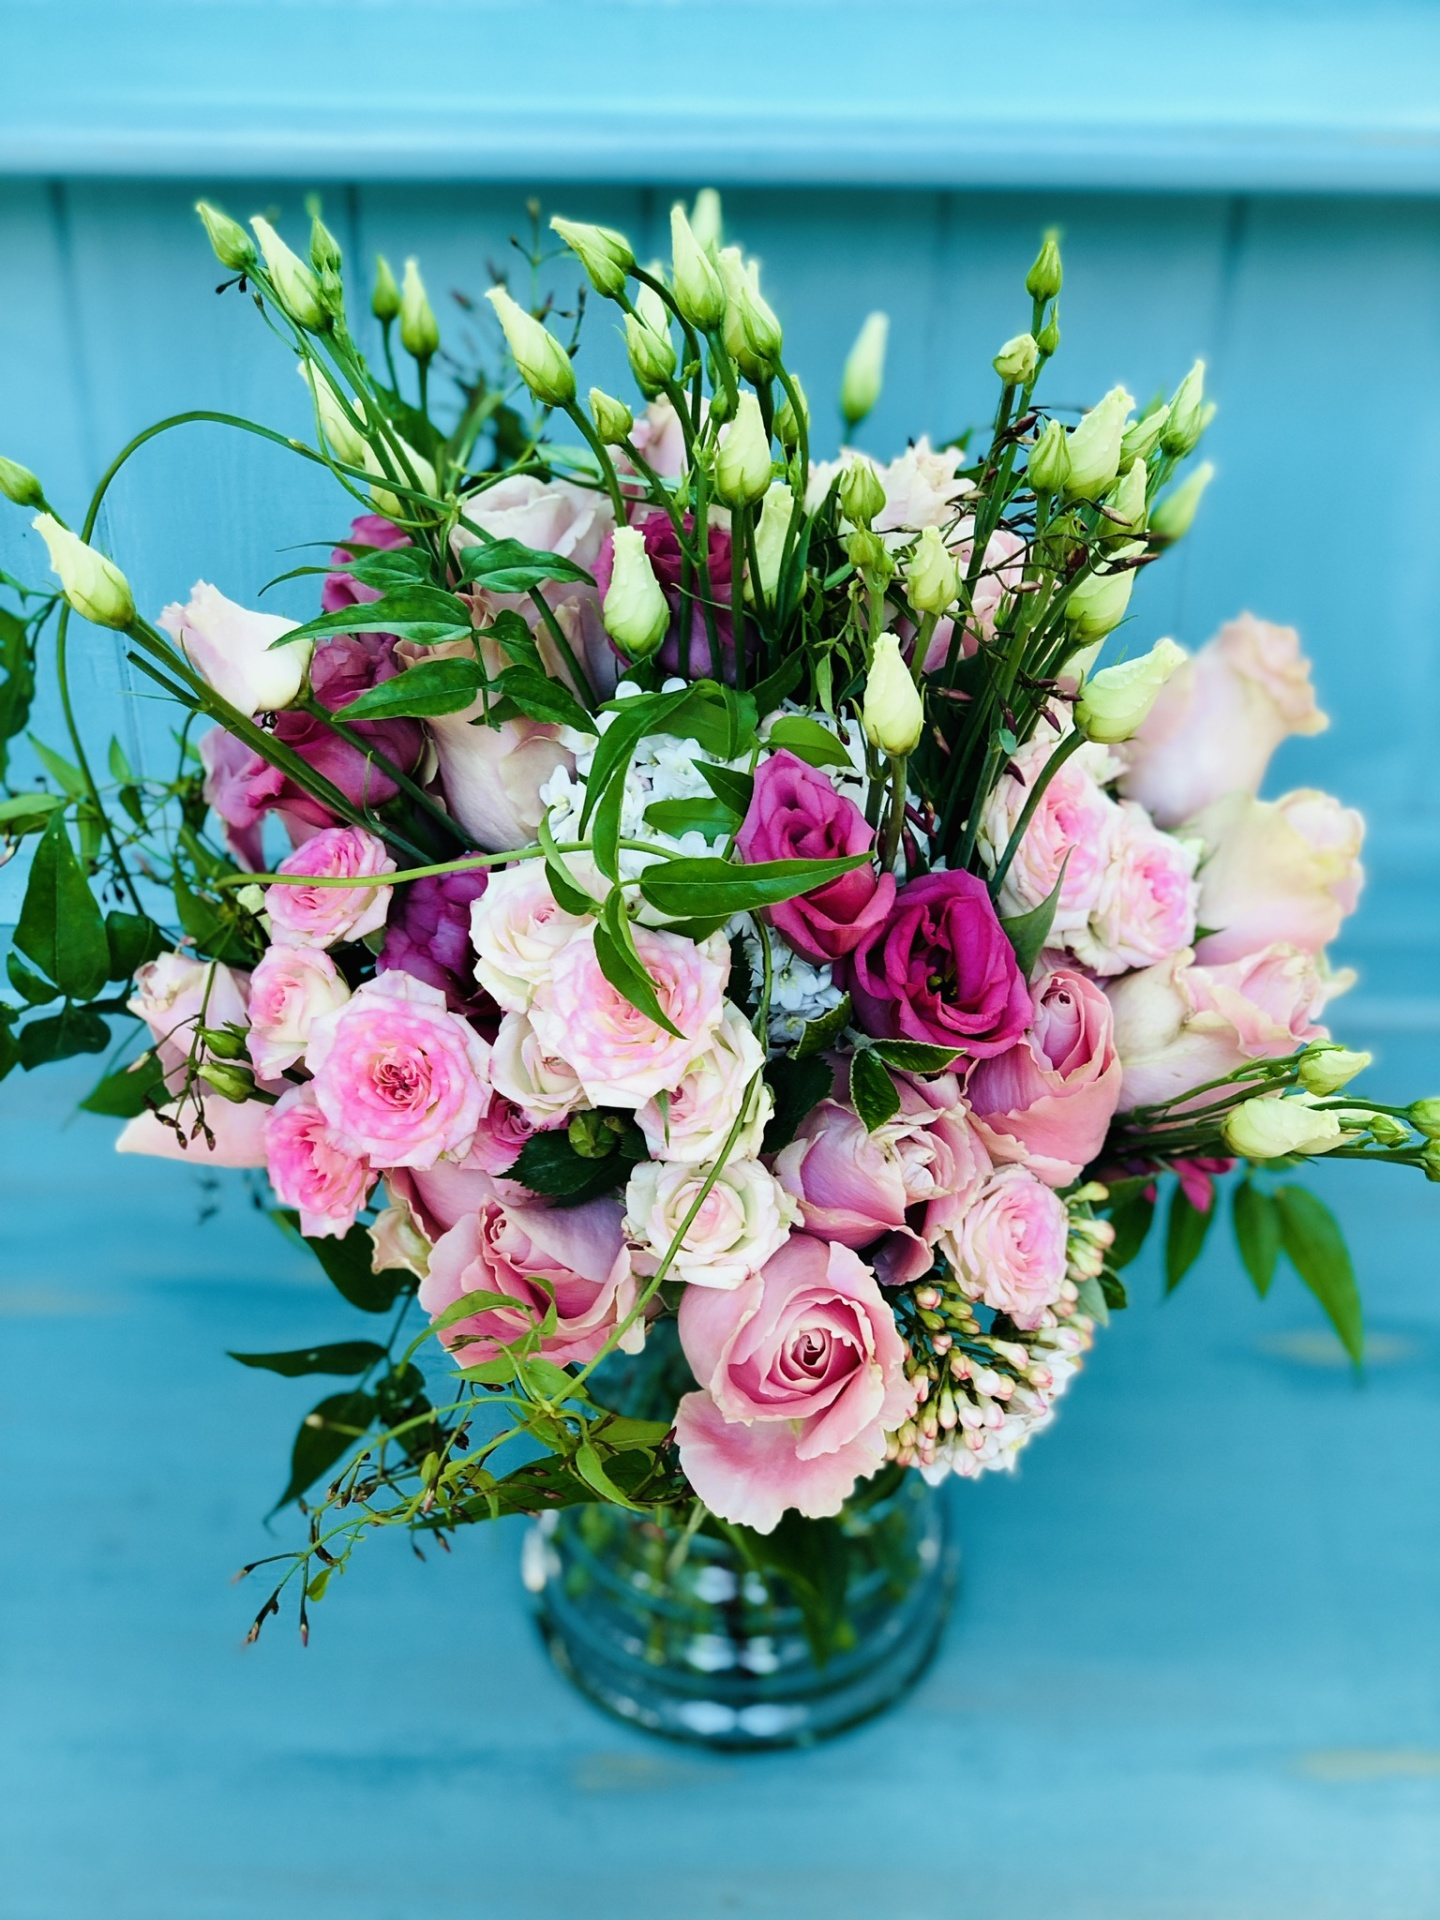 Luxury summer pink and blue bouquet of pink avalanche roses, bouvardia, clematis and agapanthus.